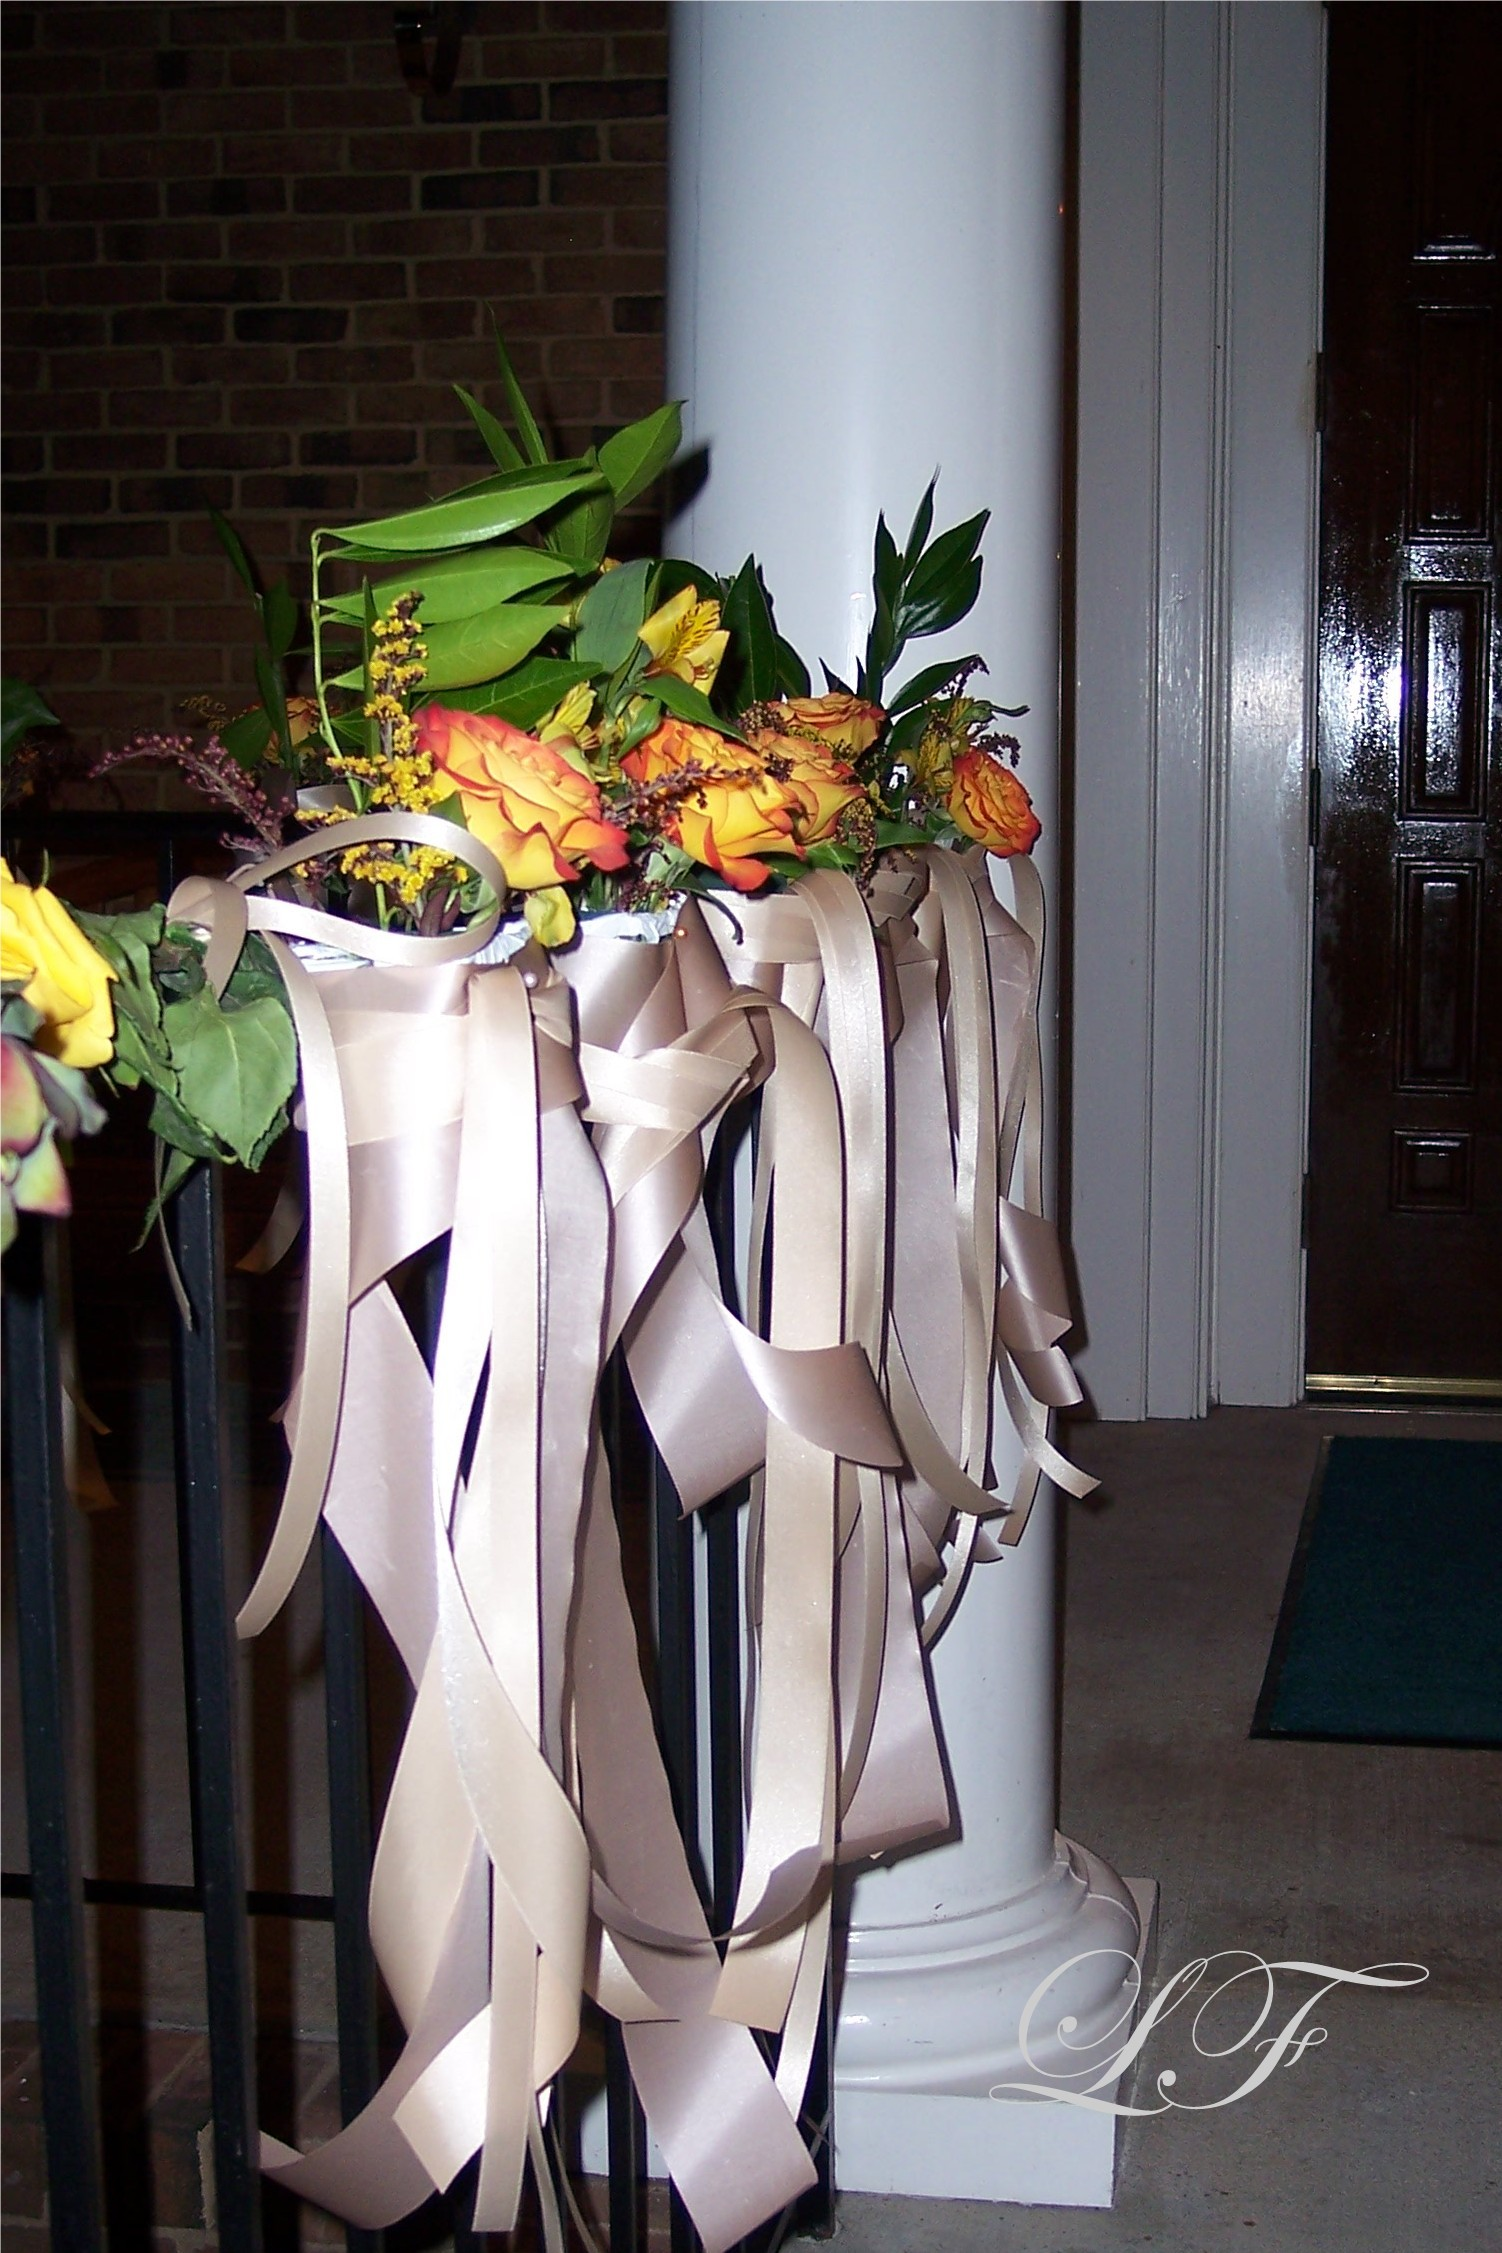 Flowers & Decor, Flowers, Lasting florals, Entry